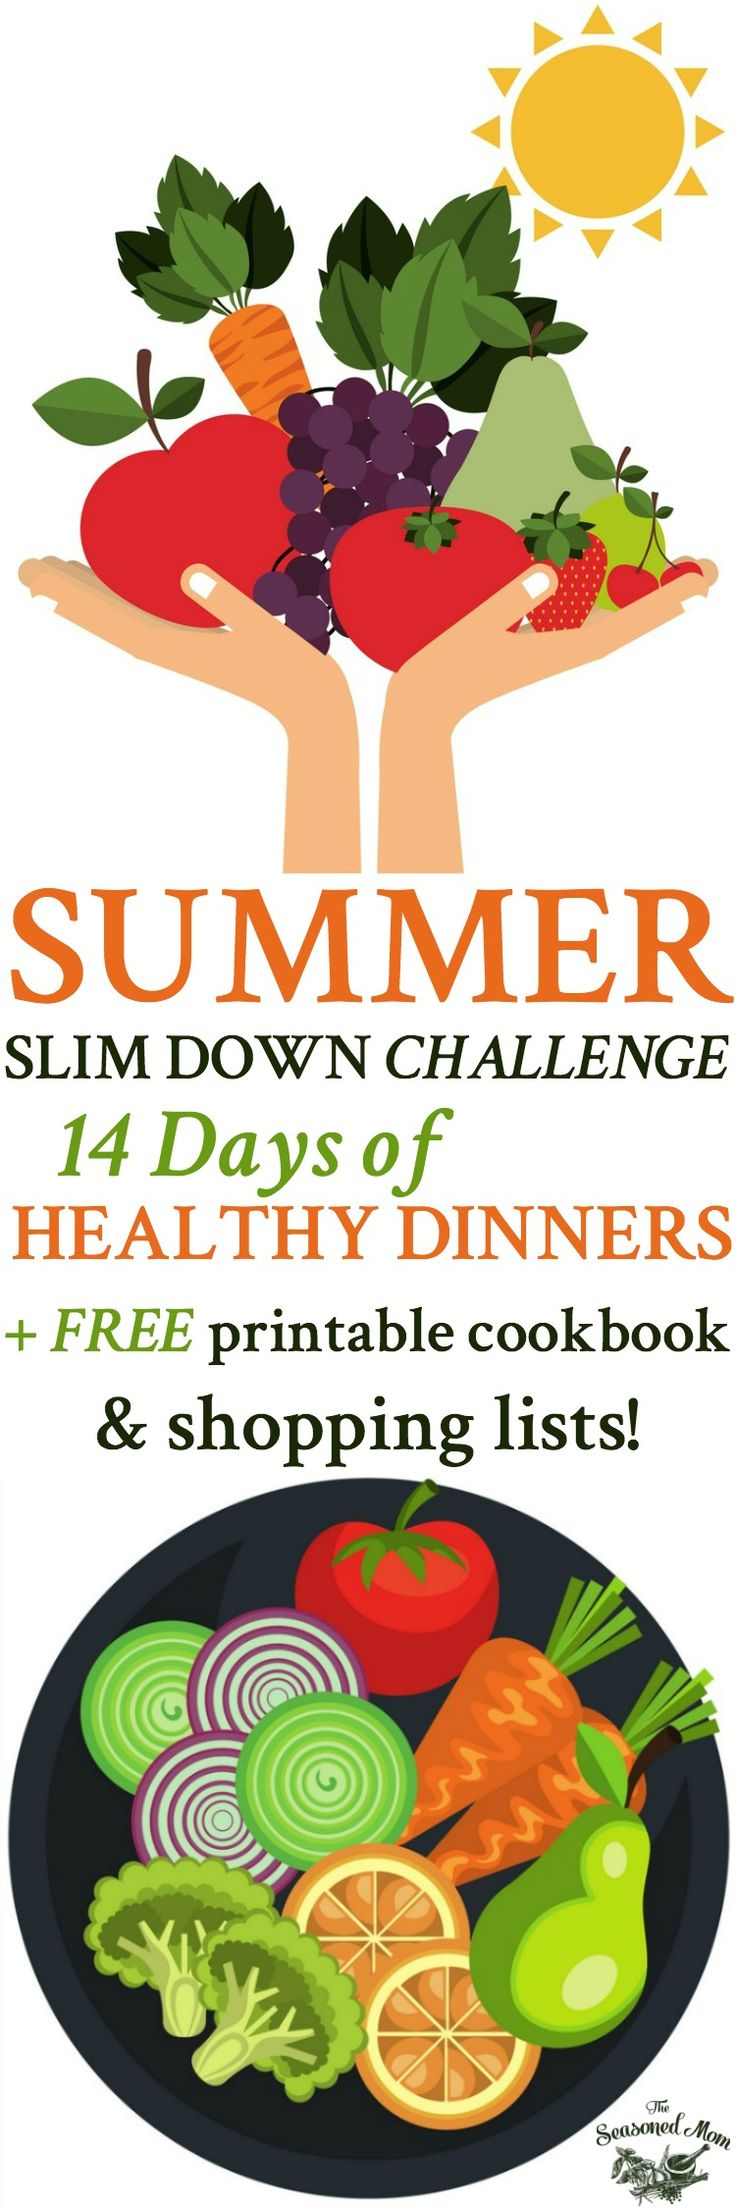 Summer Slim Down Challenge: 14 Days of Healthy Dinner Recipes | Meal Plan | Meal Planning Printable | Meal Plan for Weight loss | Dinner Ideas | Dinner Recipes Easy